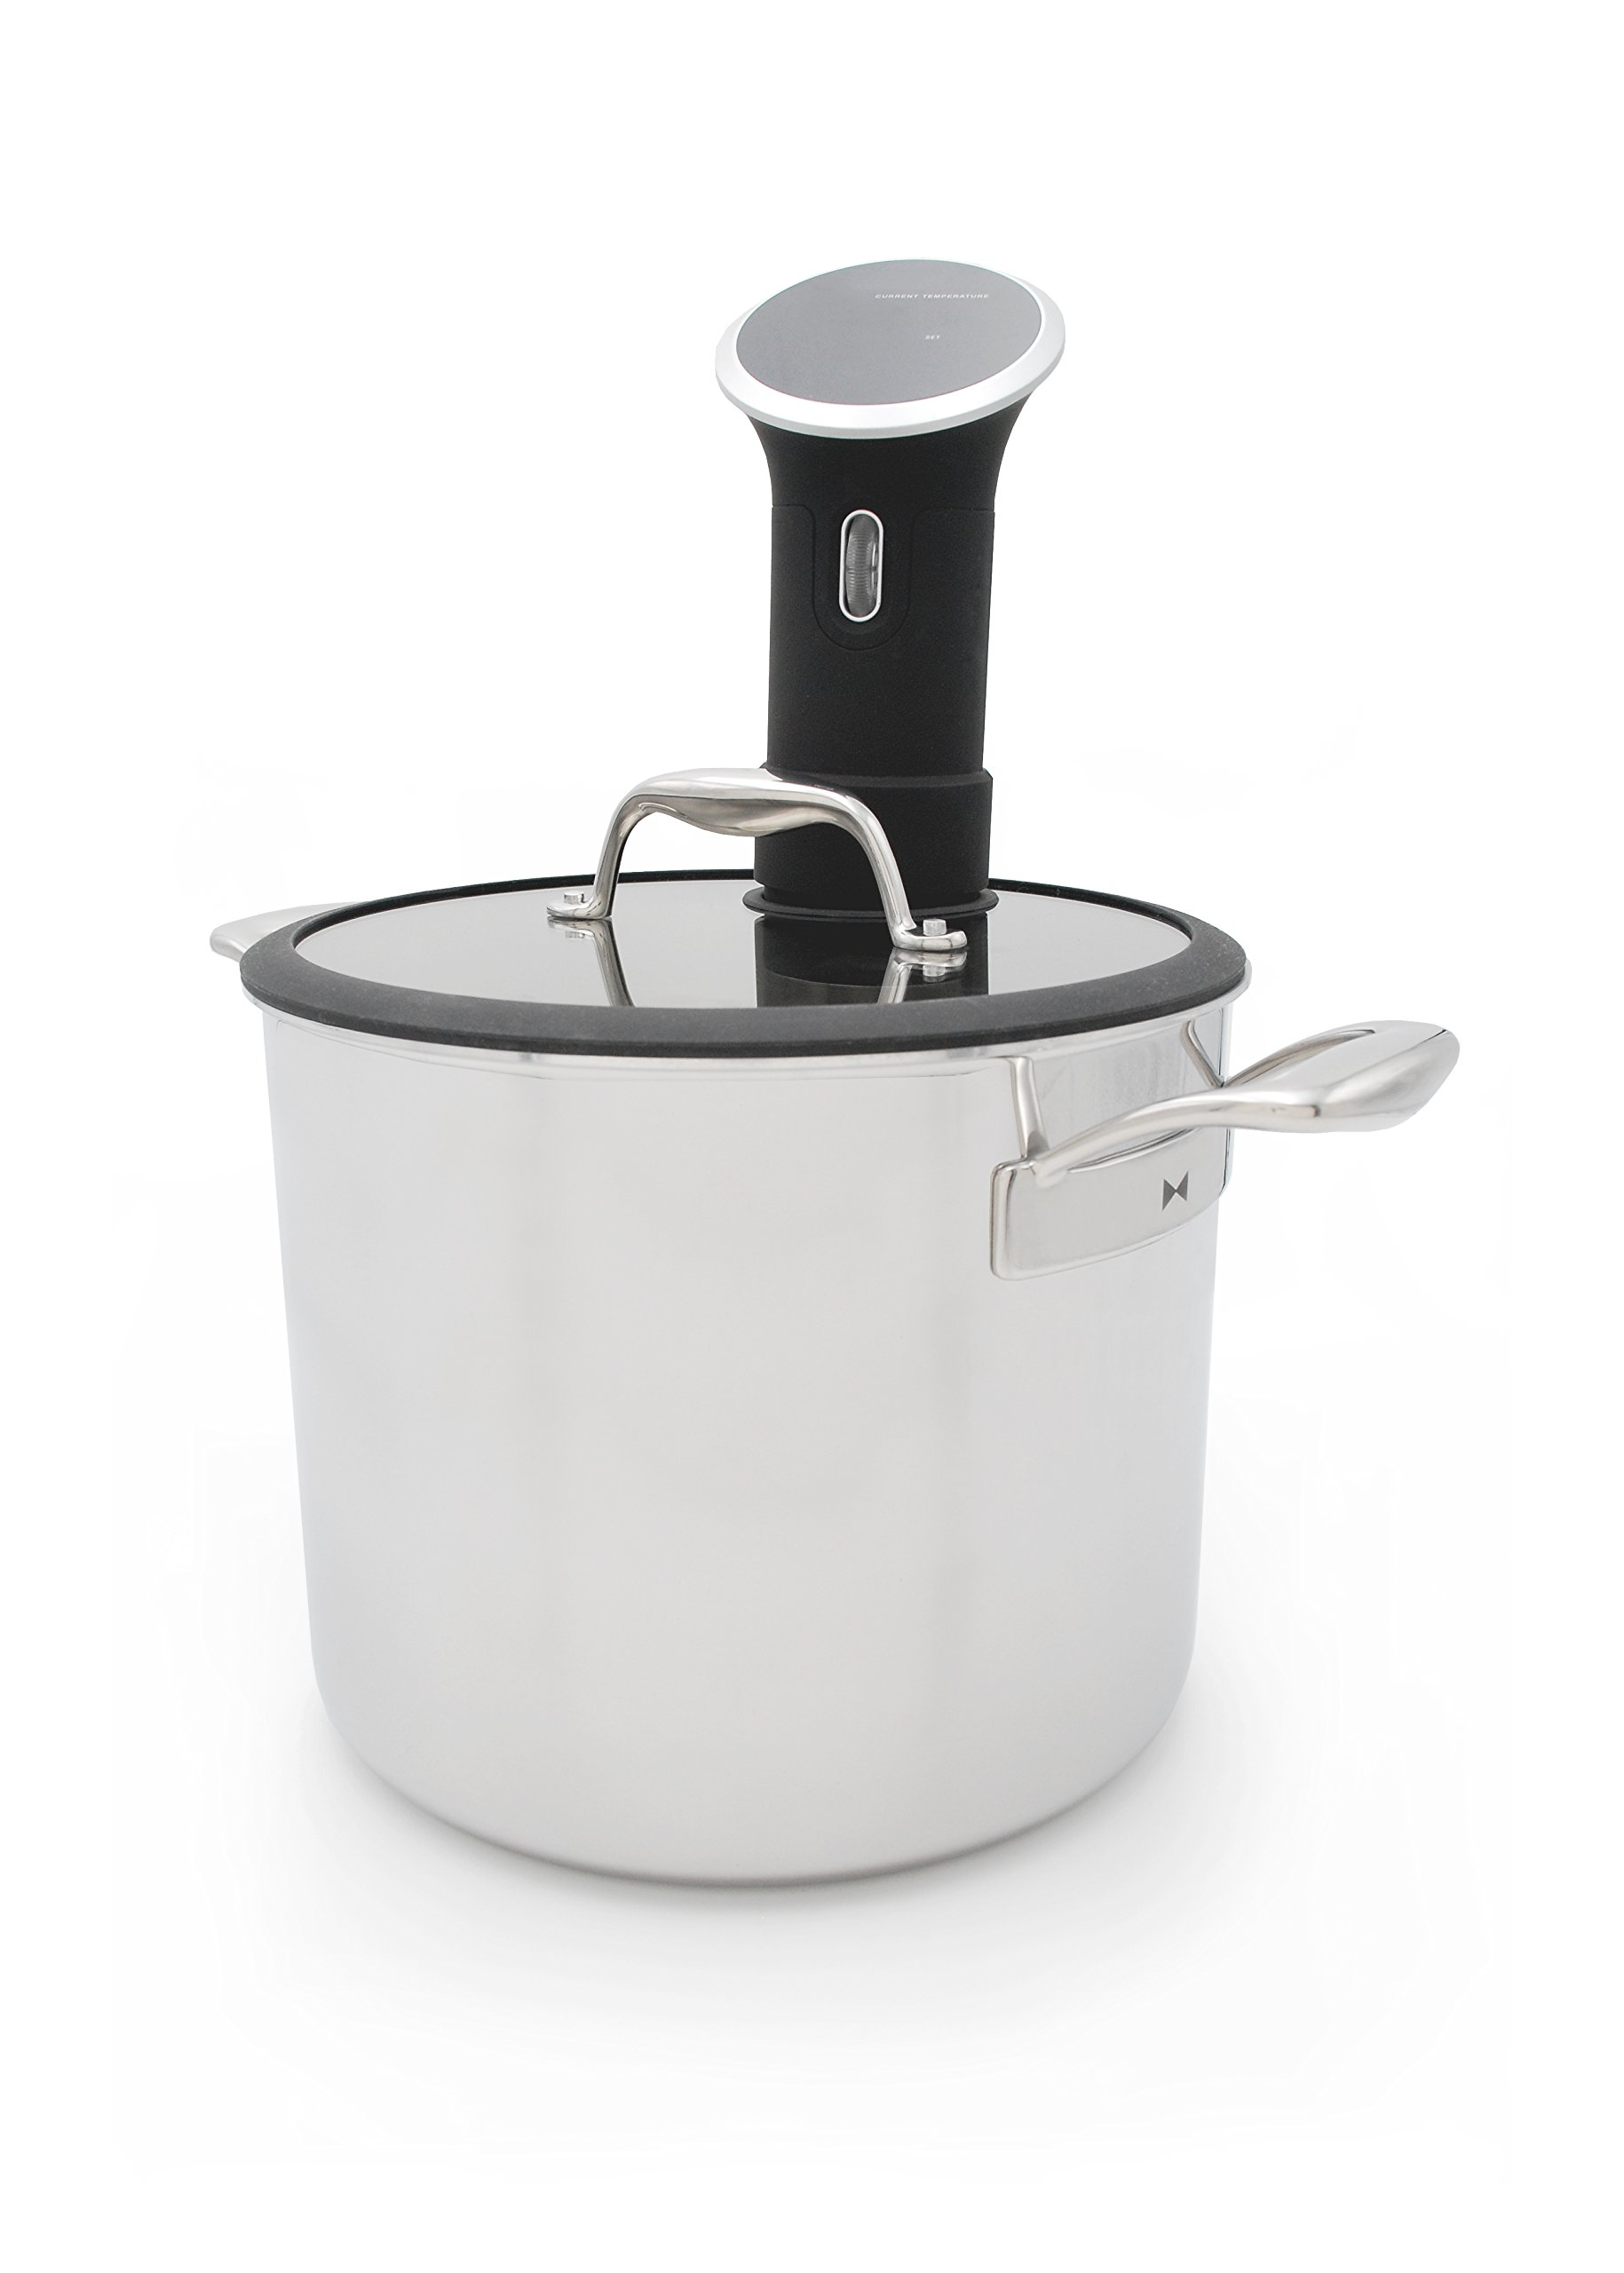 Tuxton Home THBCZ3-SS9-G Chef Series Sous Vide Pot Specialty Stockpot, 9.8 quart, Stainless steel by Tuxton Home (Image #1)